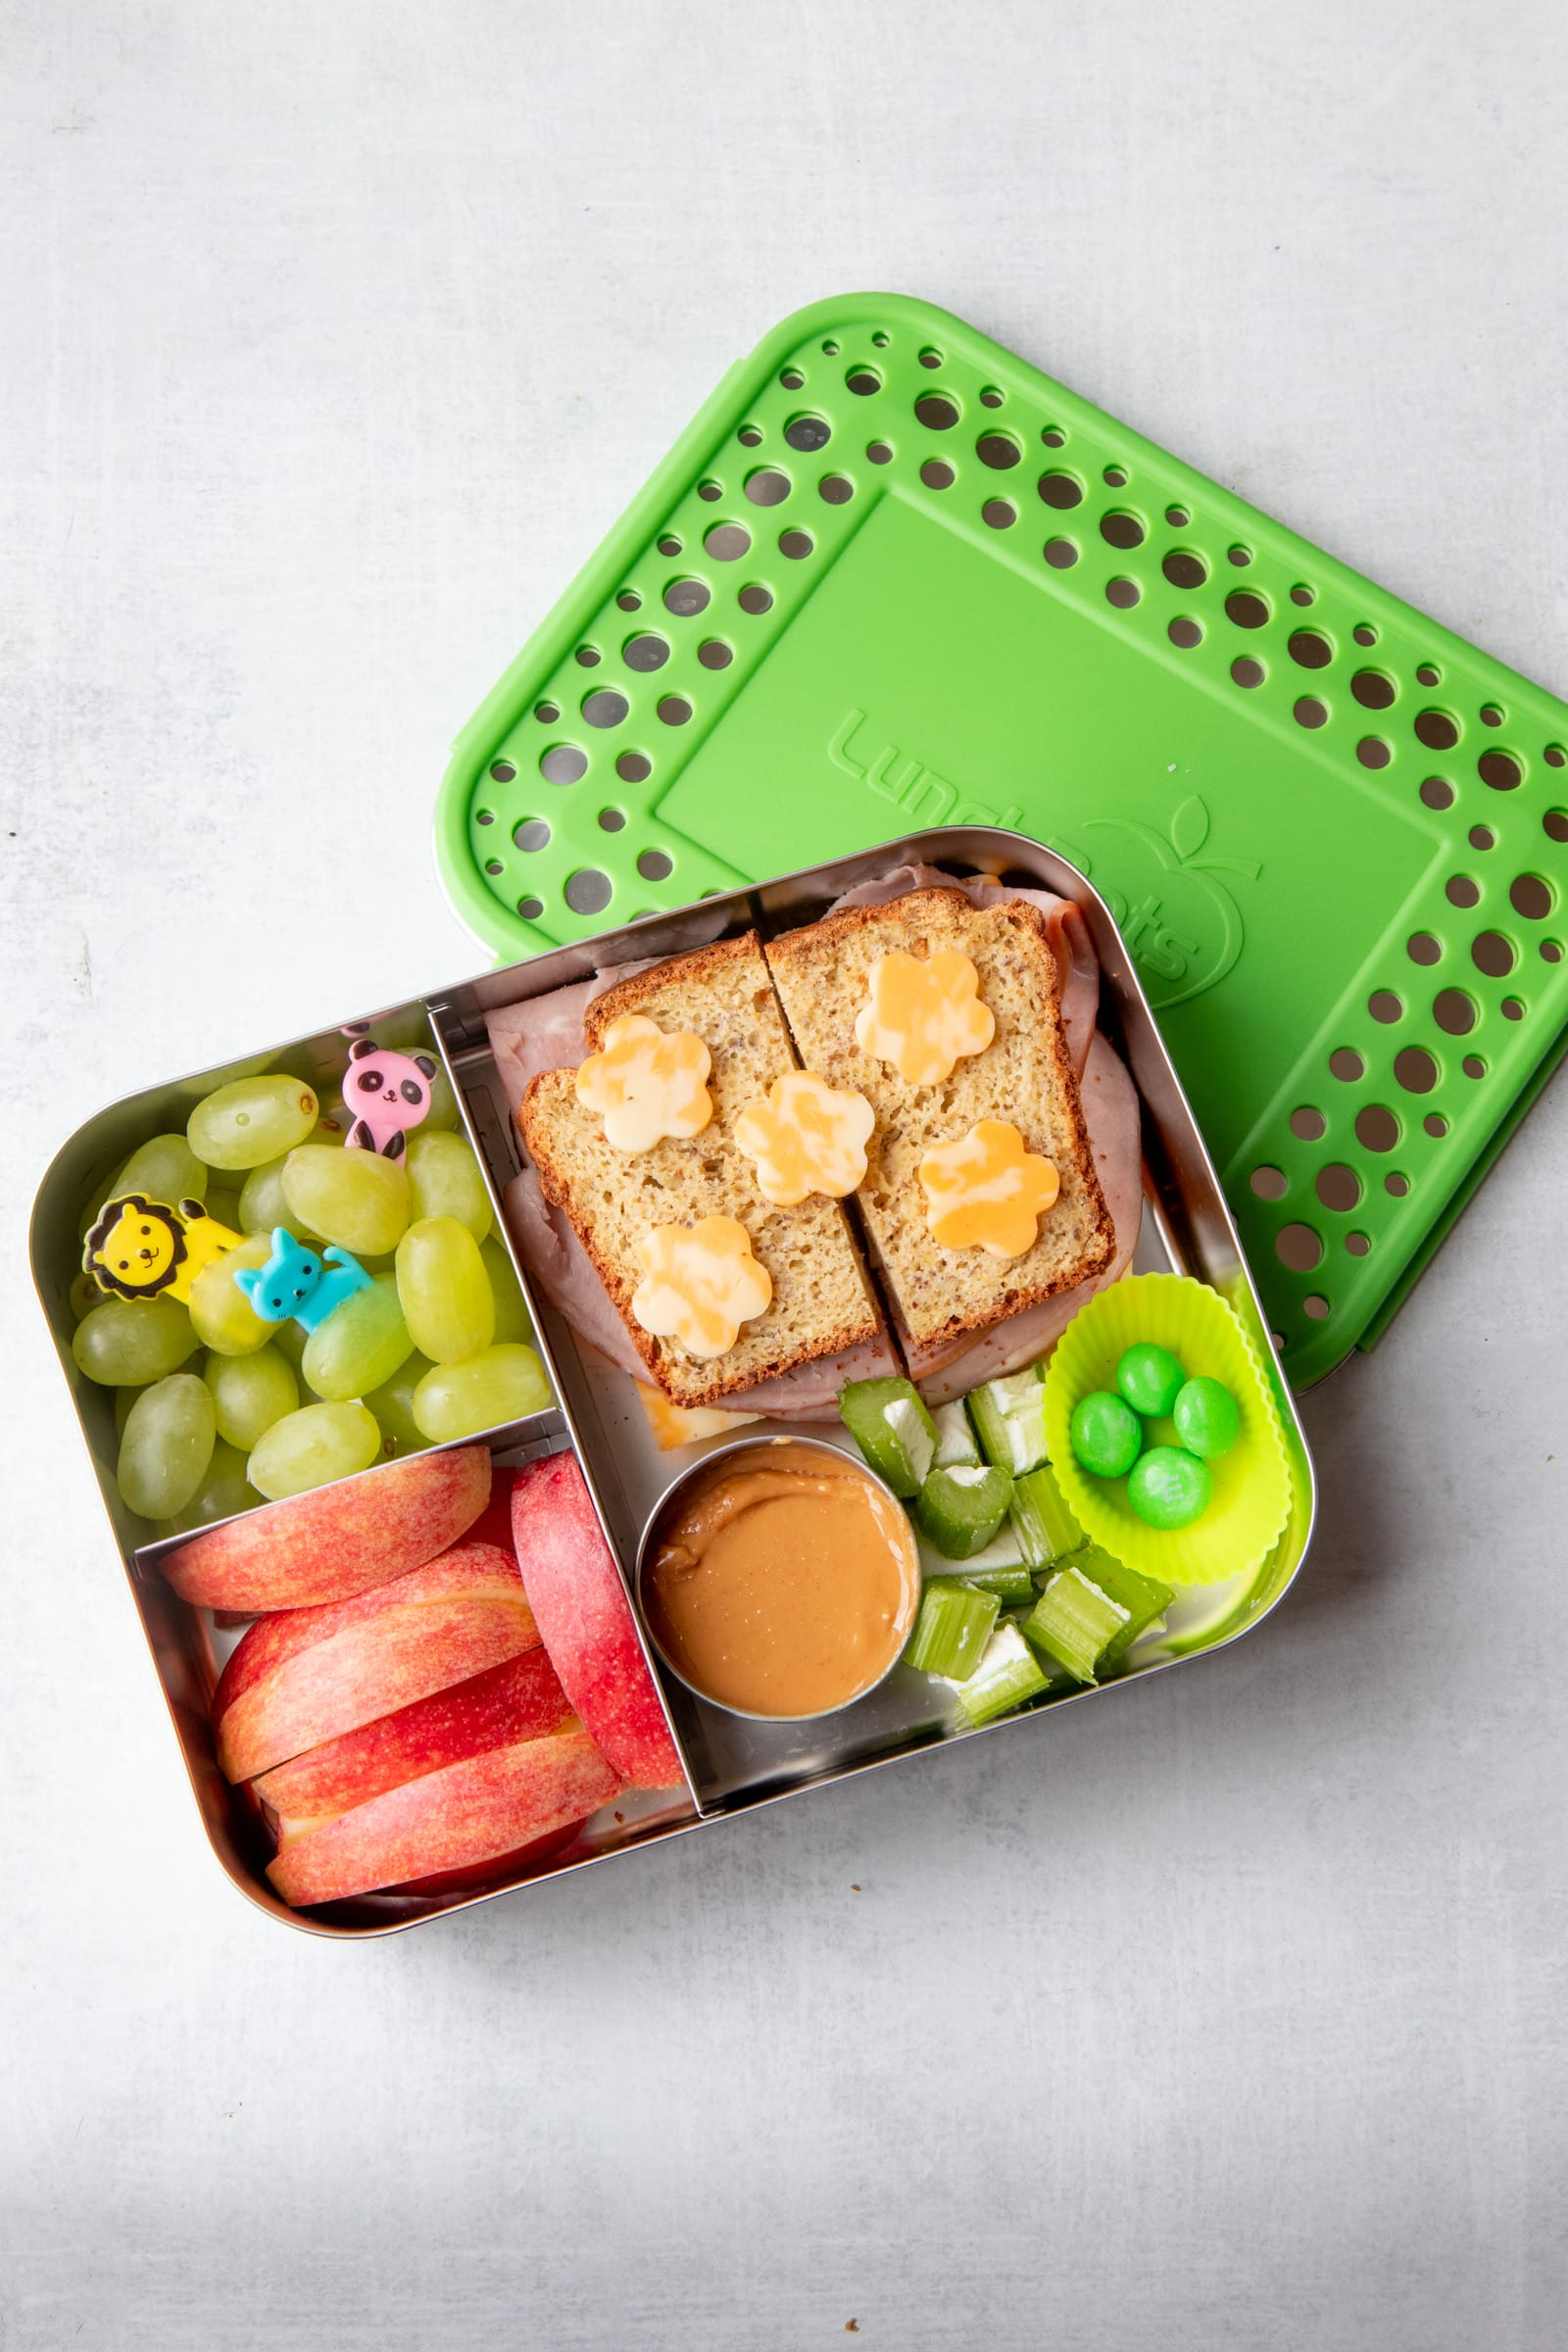 A zero-waste packed lunch consisting of a divided lunch box with a sandwich, grapes, apple slices, and celery.